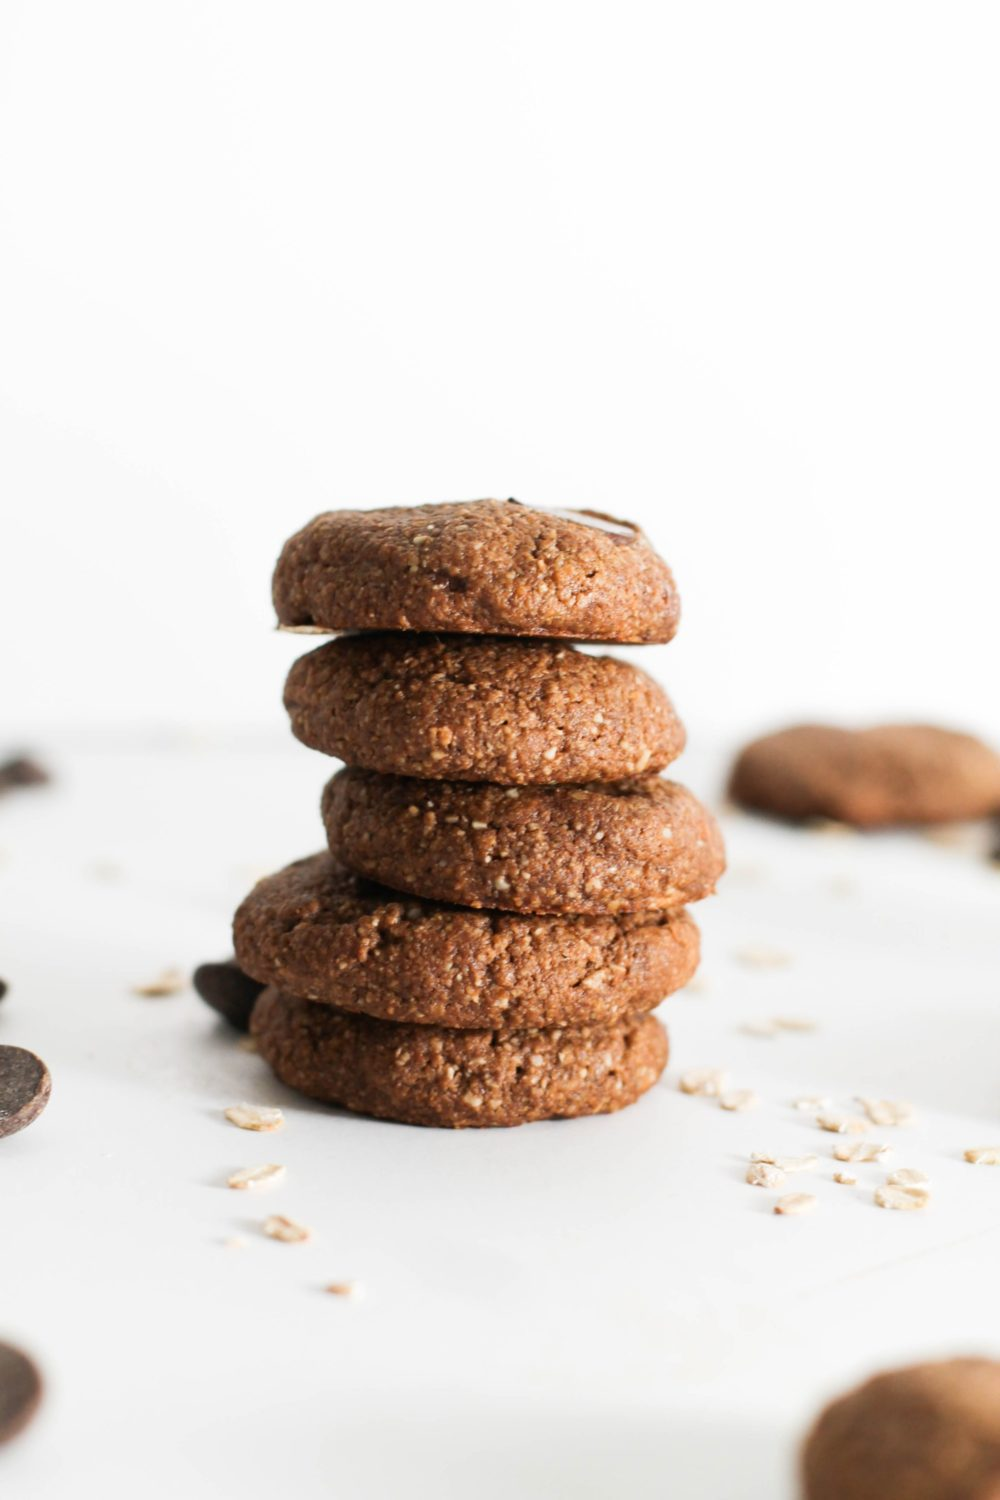 60 Gluten Free and Dairy Free Christmas Cookies: Flourless Chocolate Almond Butter Cookies from Danielle's Kitchen #glutenfree